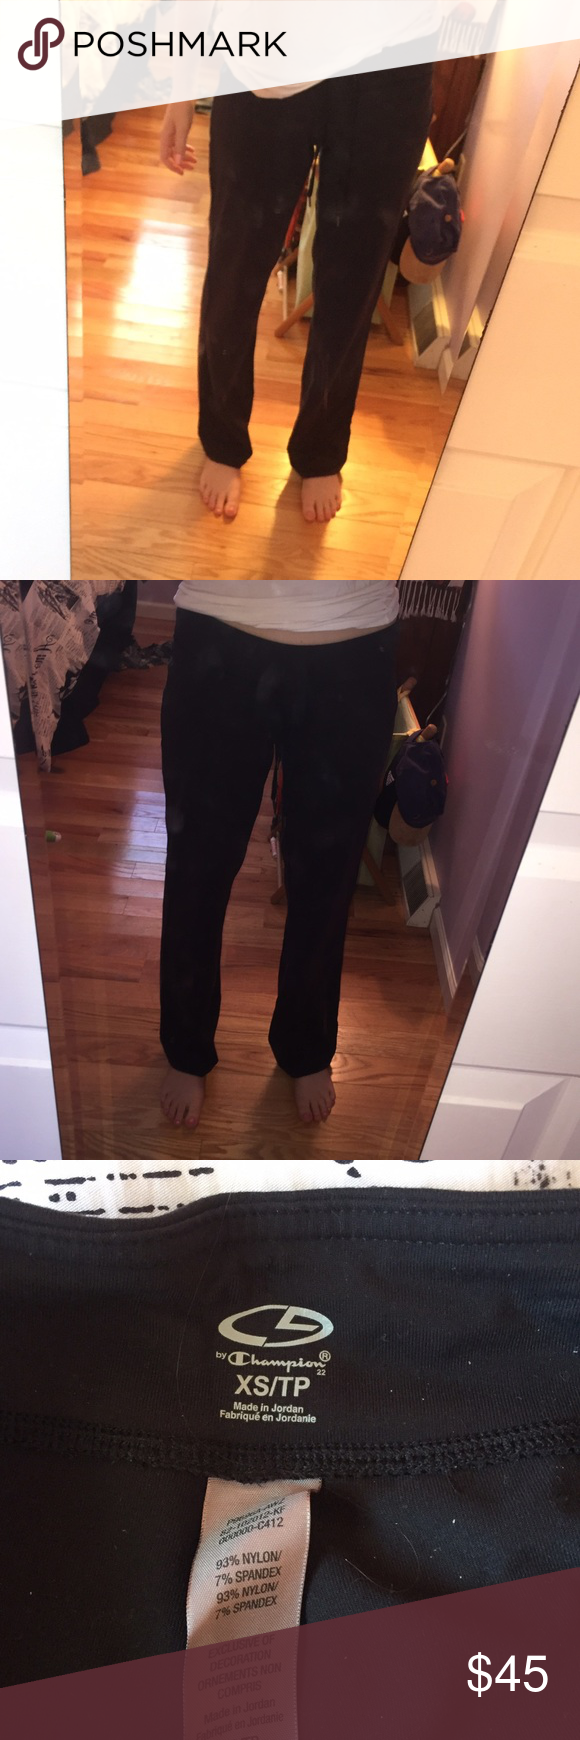 Champion sweat/yoga pants Super comfy black champion yoga pants, worn maybe 3 times and in perfect condition, OPEN TO ALL OFFERS Champion Pants Track Pants & Joggers